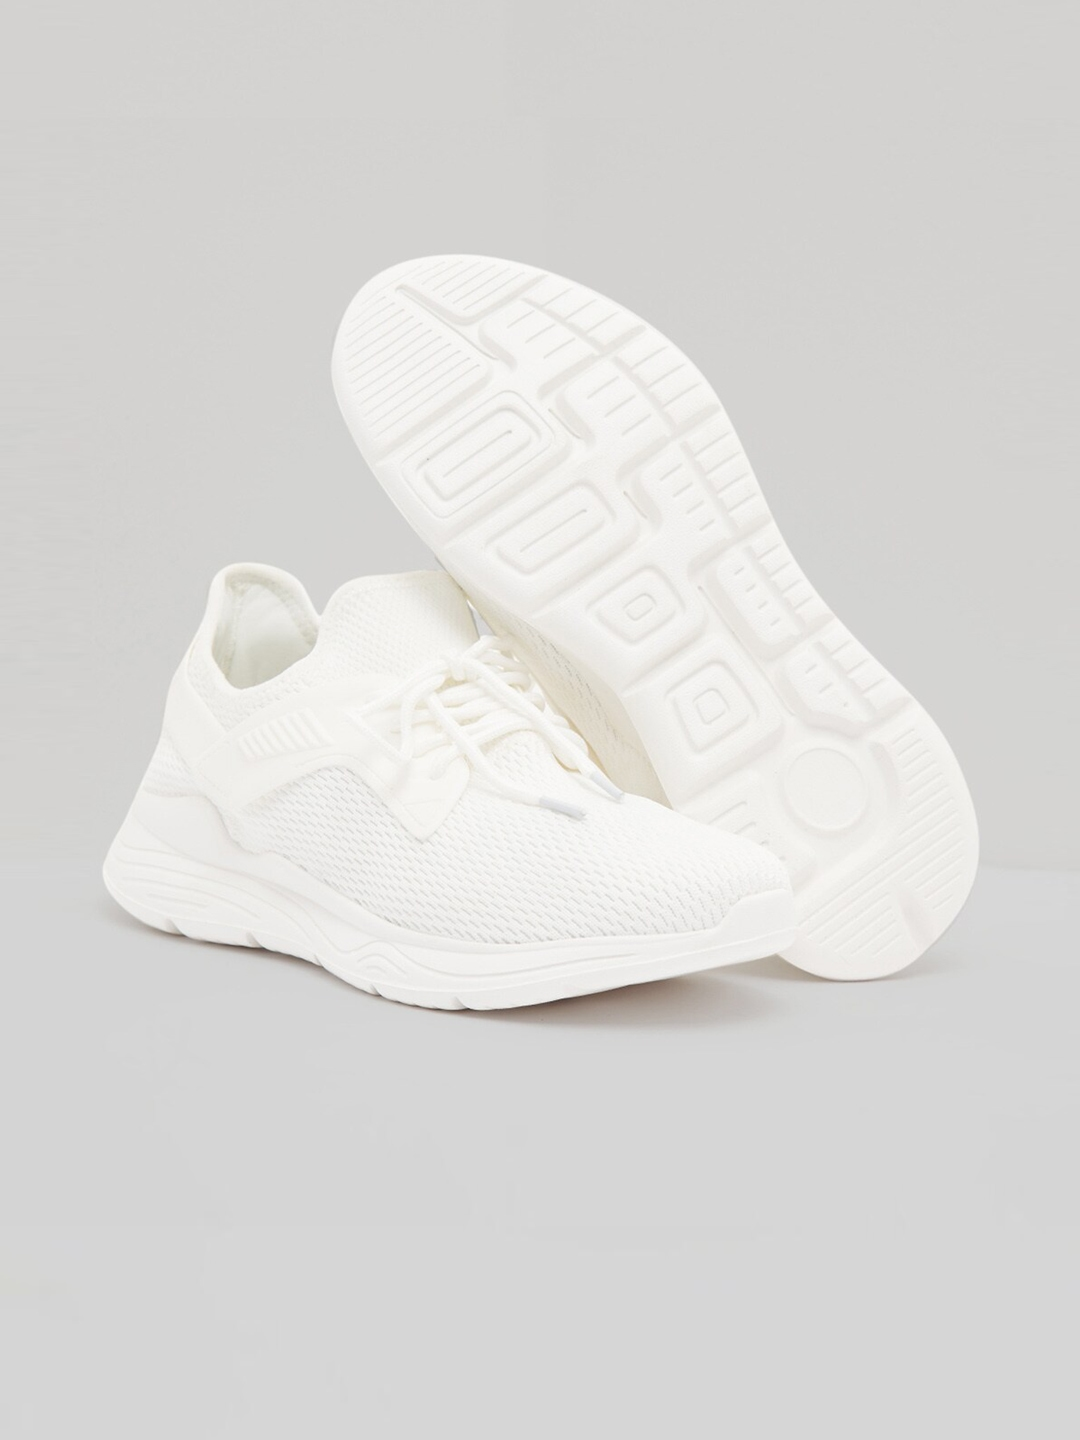 shoe express Men White Solid Running Sports Shoes